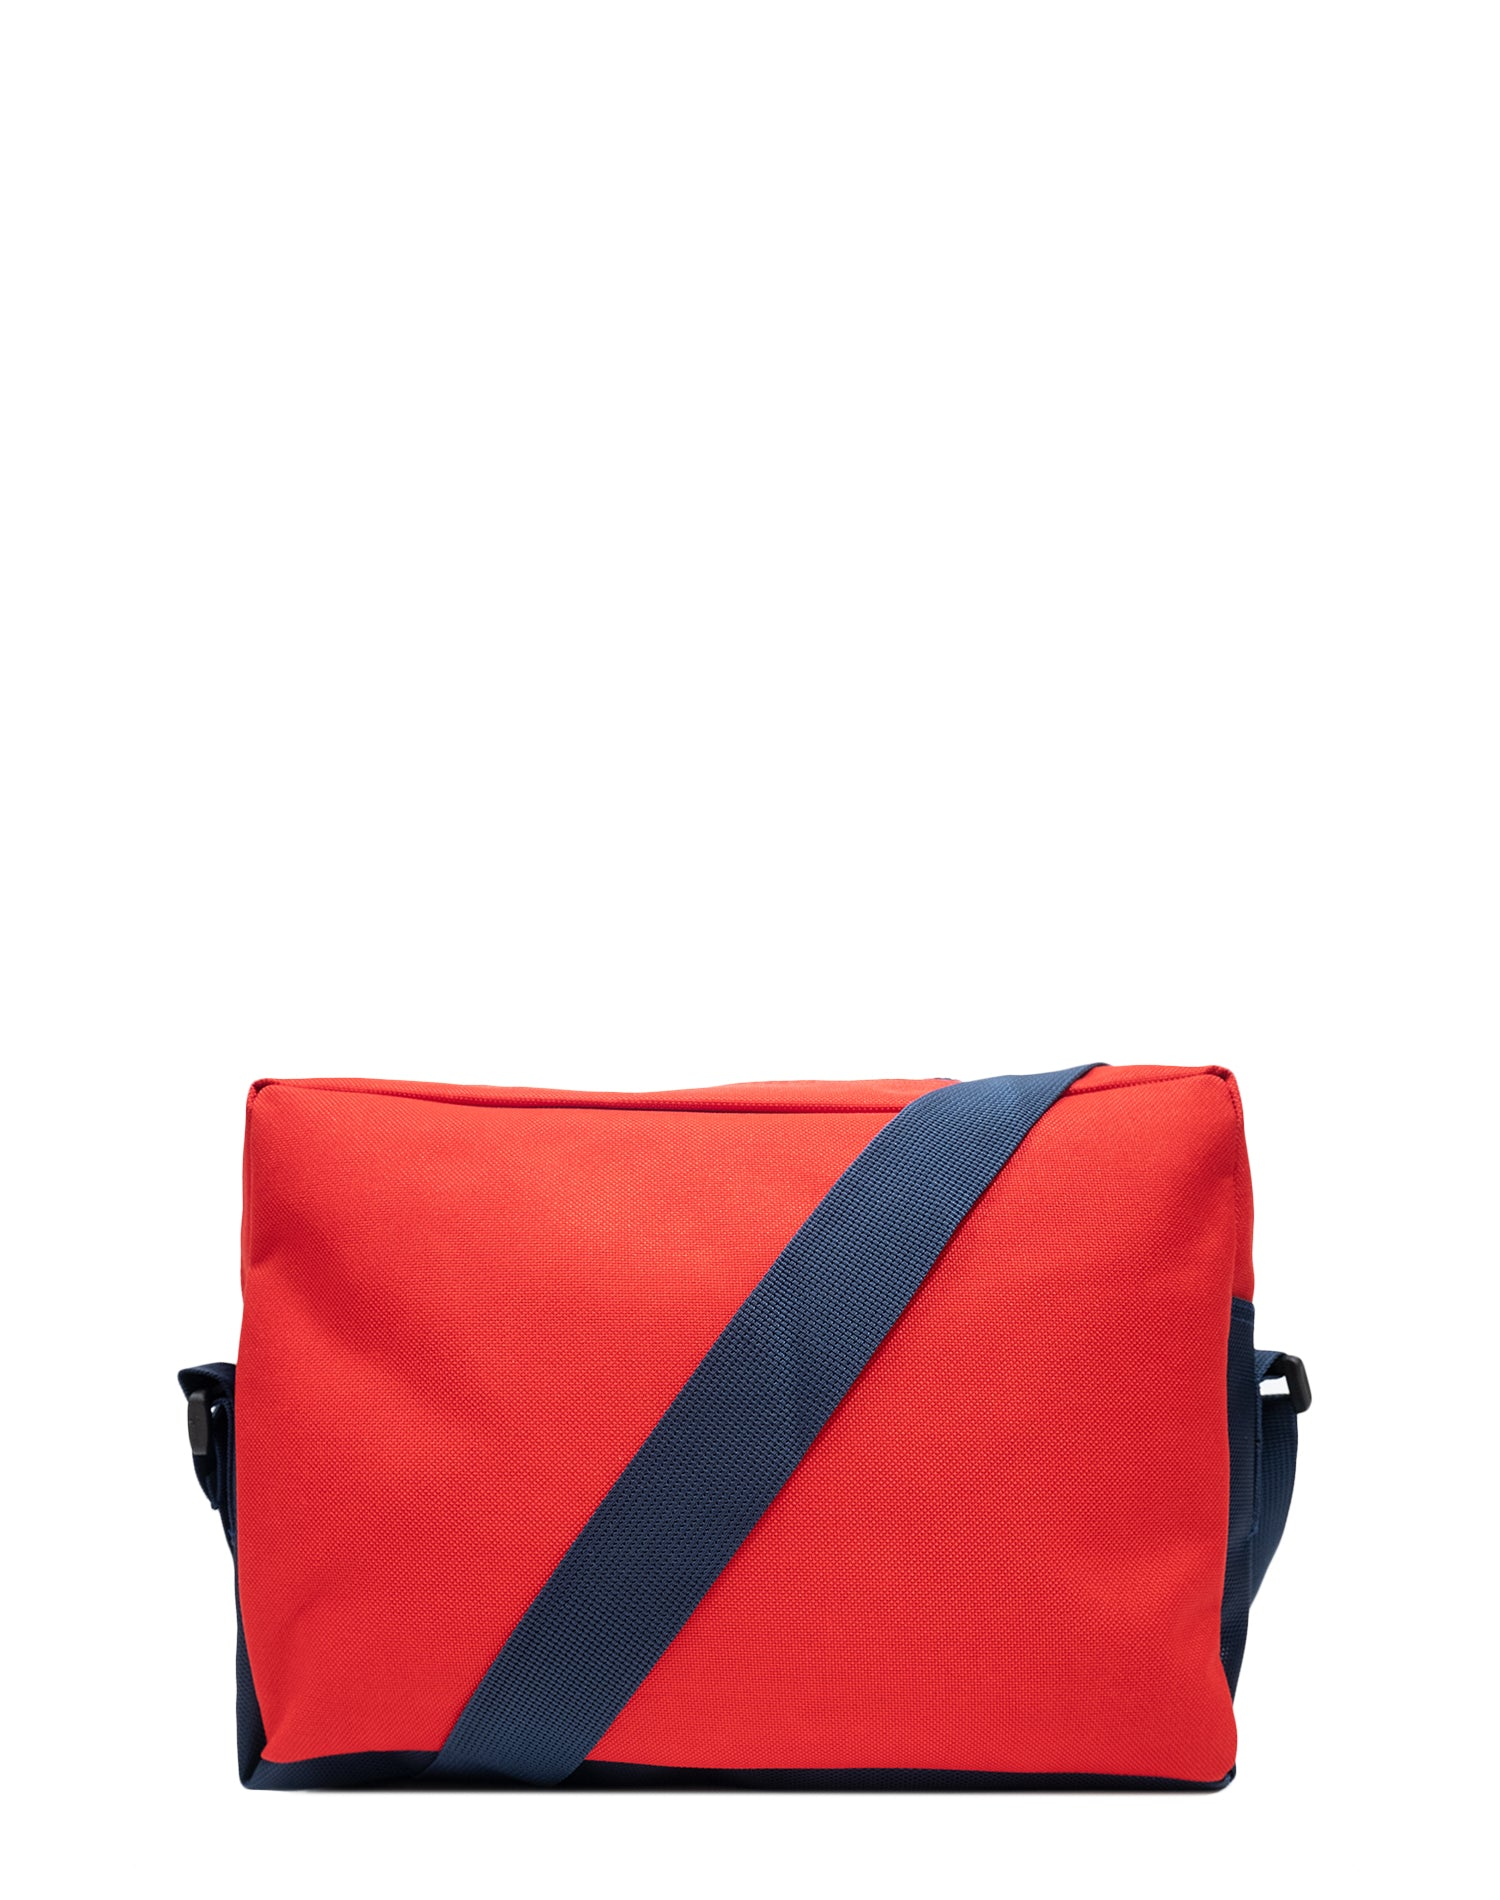 Red Canvas Shoulder Bag.紅色帆布斜揹袋